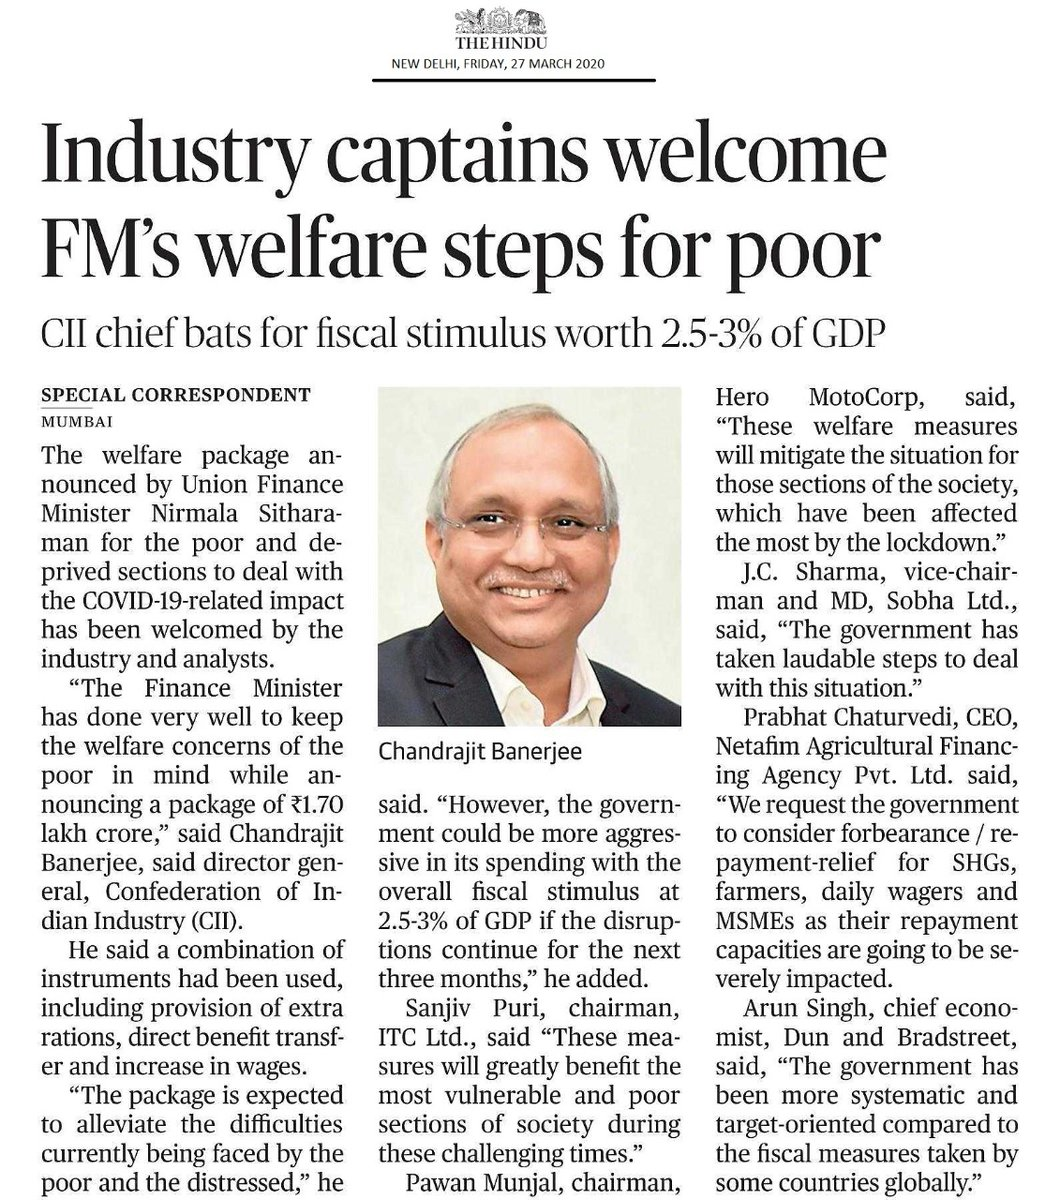 Hon. Finance Minister @nsitharaman  has done very well to keep the welfare concerns of the poor in mind while announcing a package of ₹1.70 lakh crore. ~ @CB_CII , DG, CII welcomes FM's welfare package for poor #cii4india  #IndiaFightsCorona  @nsitharamanoffc   https://www.thehindu.com/business/industry-captains-welcome-fms-welfare-steps-for-poor/article31176152.ece  …